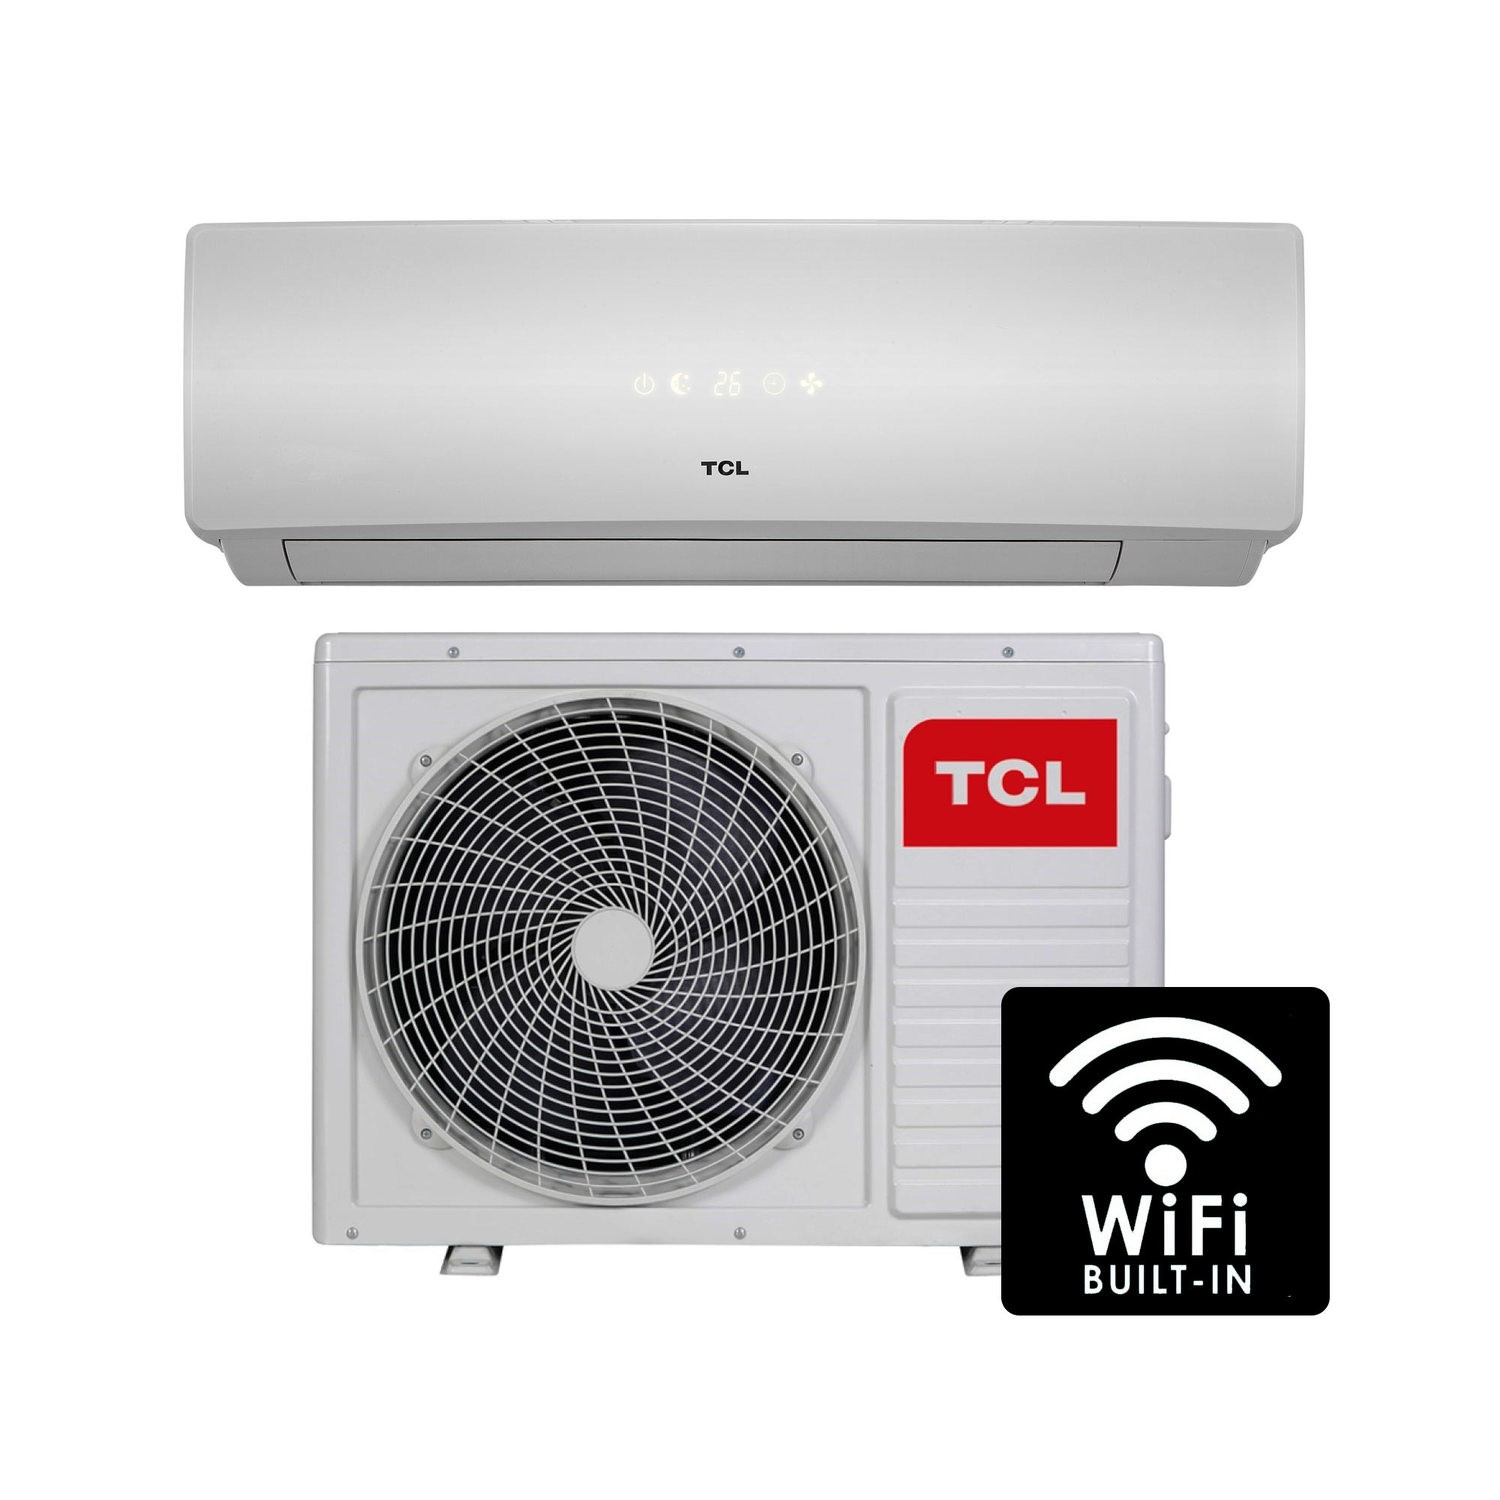 GRADE A1 - TCL 9000 BTU WIFI Smart A++ easy-fit DC Inverter Wall ...